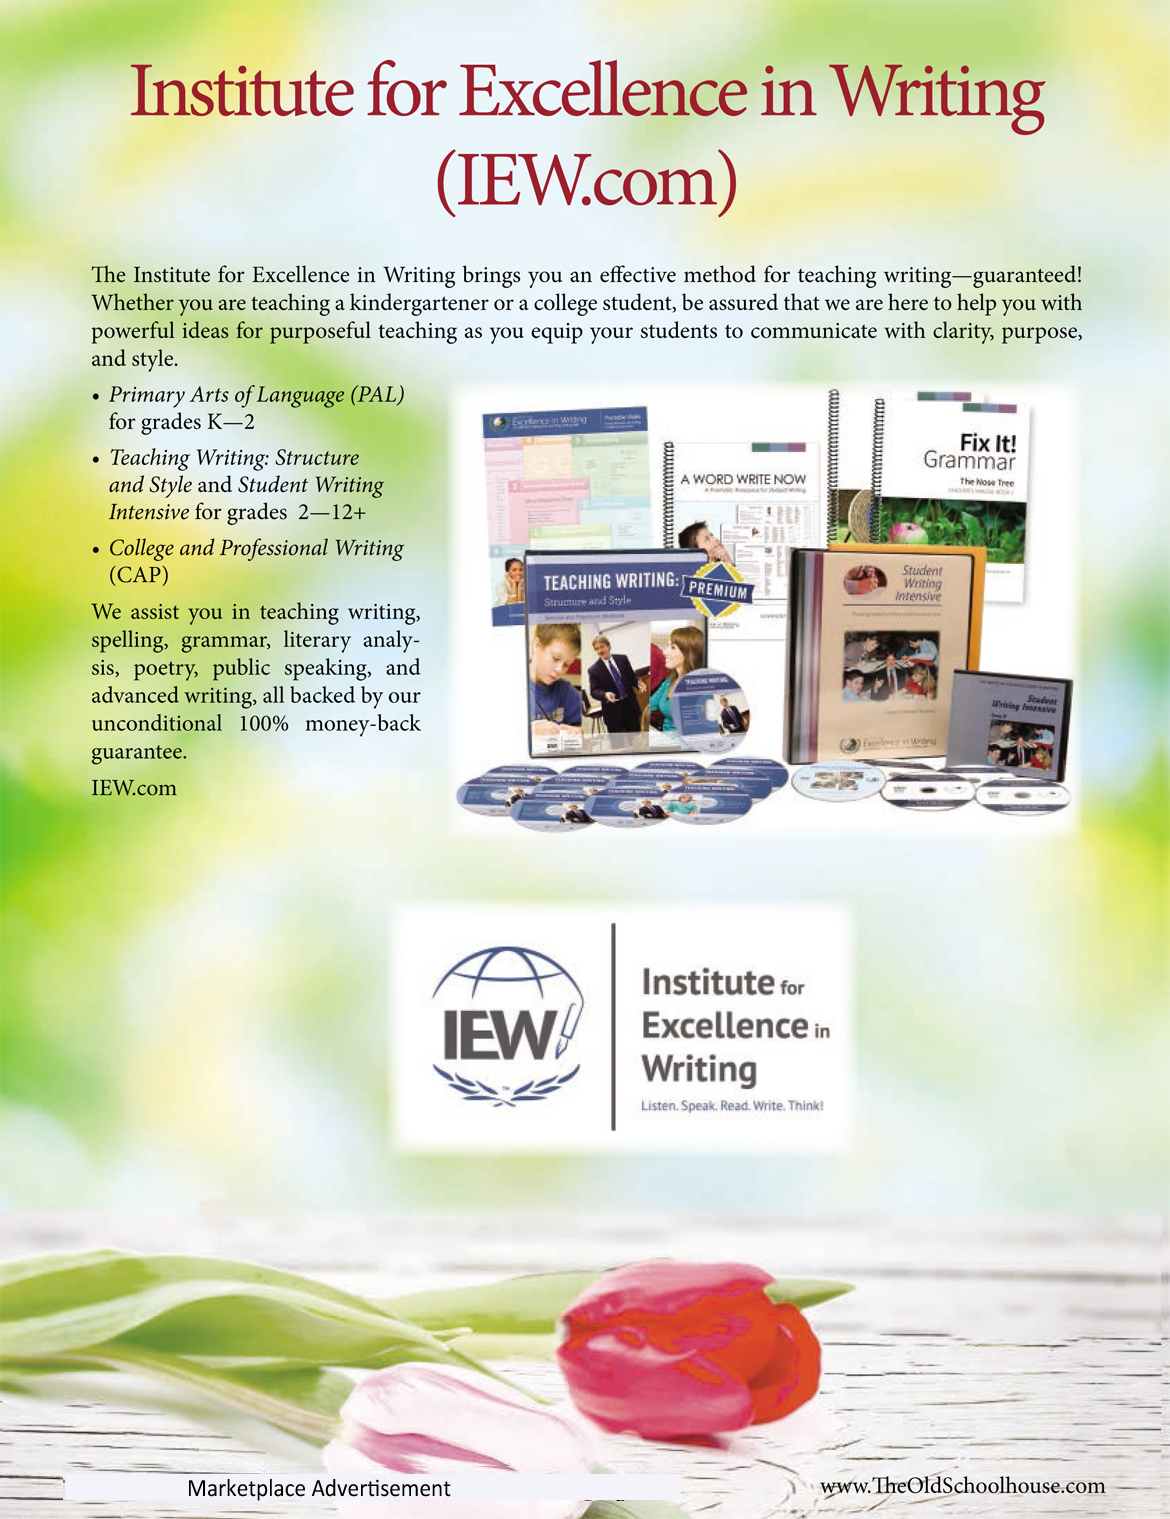 institute for excellence in writing used Find great deals on ebay for institute for excellence in writing and iew shop with confidence.